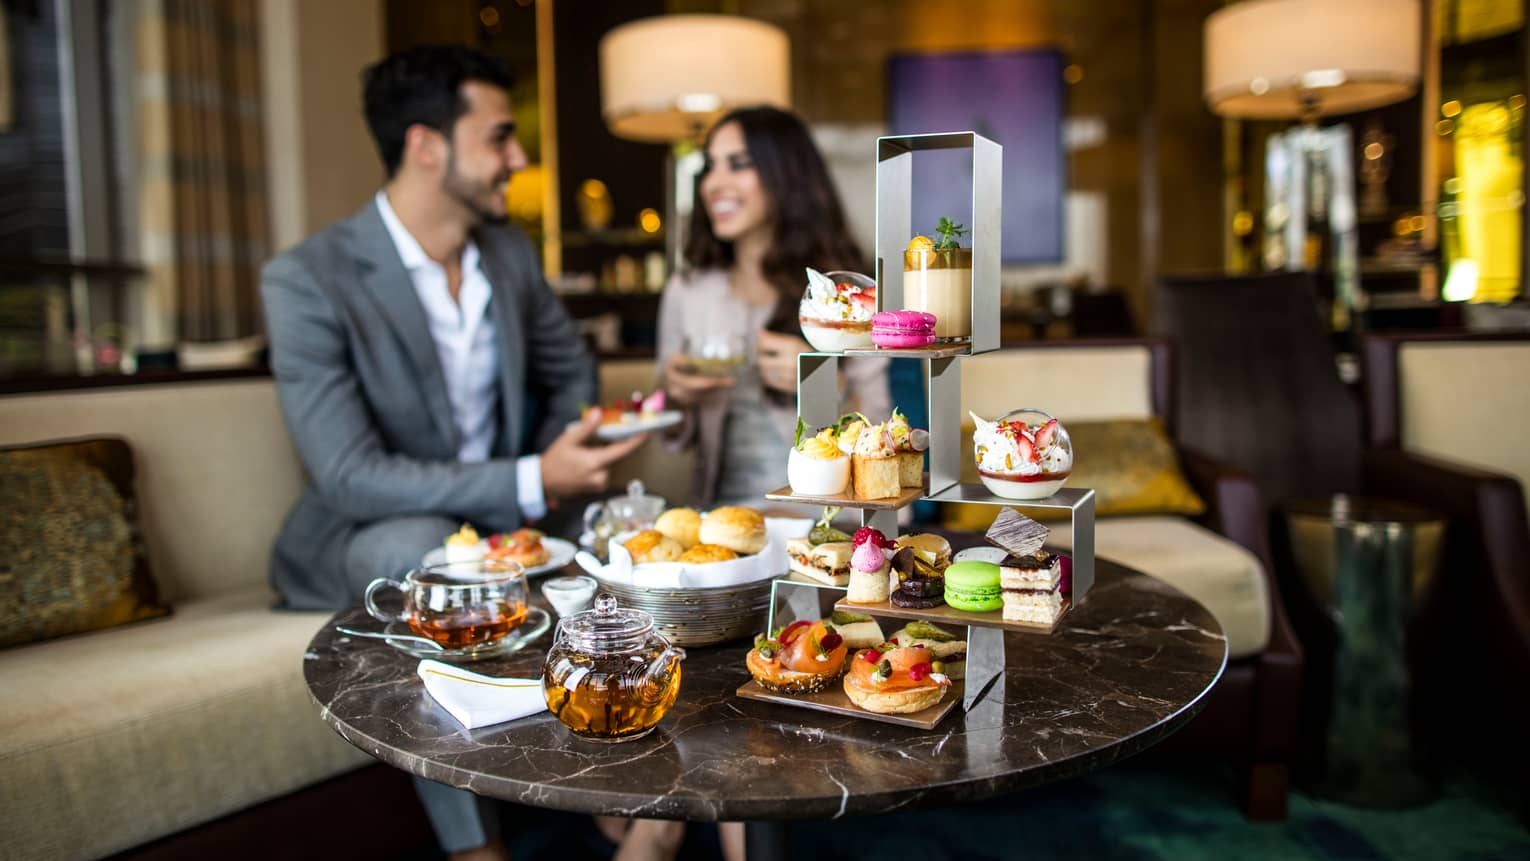 Coffee table with afternoon tea service, three-tiered tray with fine desserts, couple on sofa in background